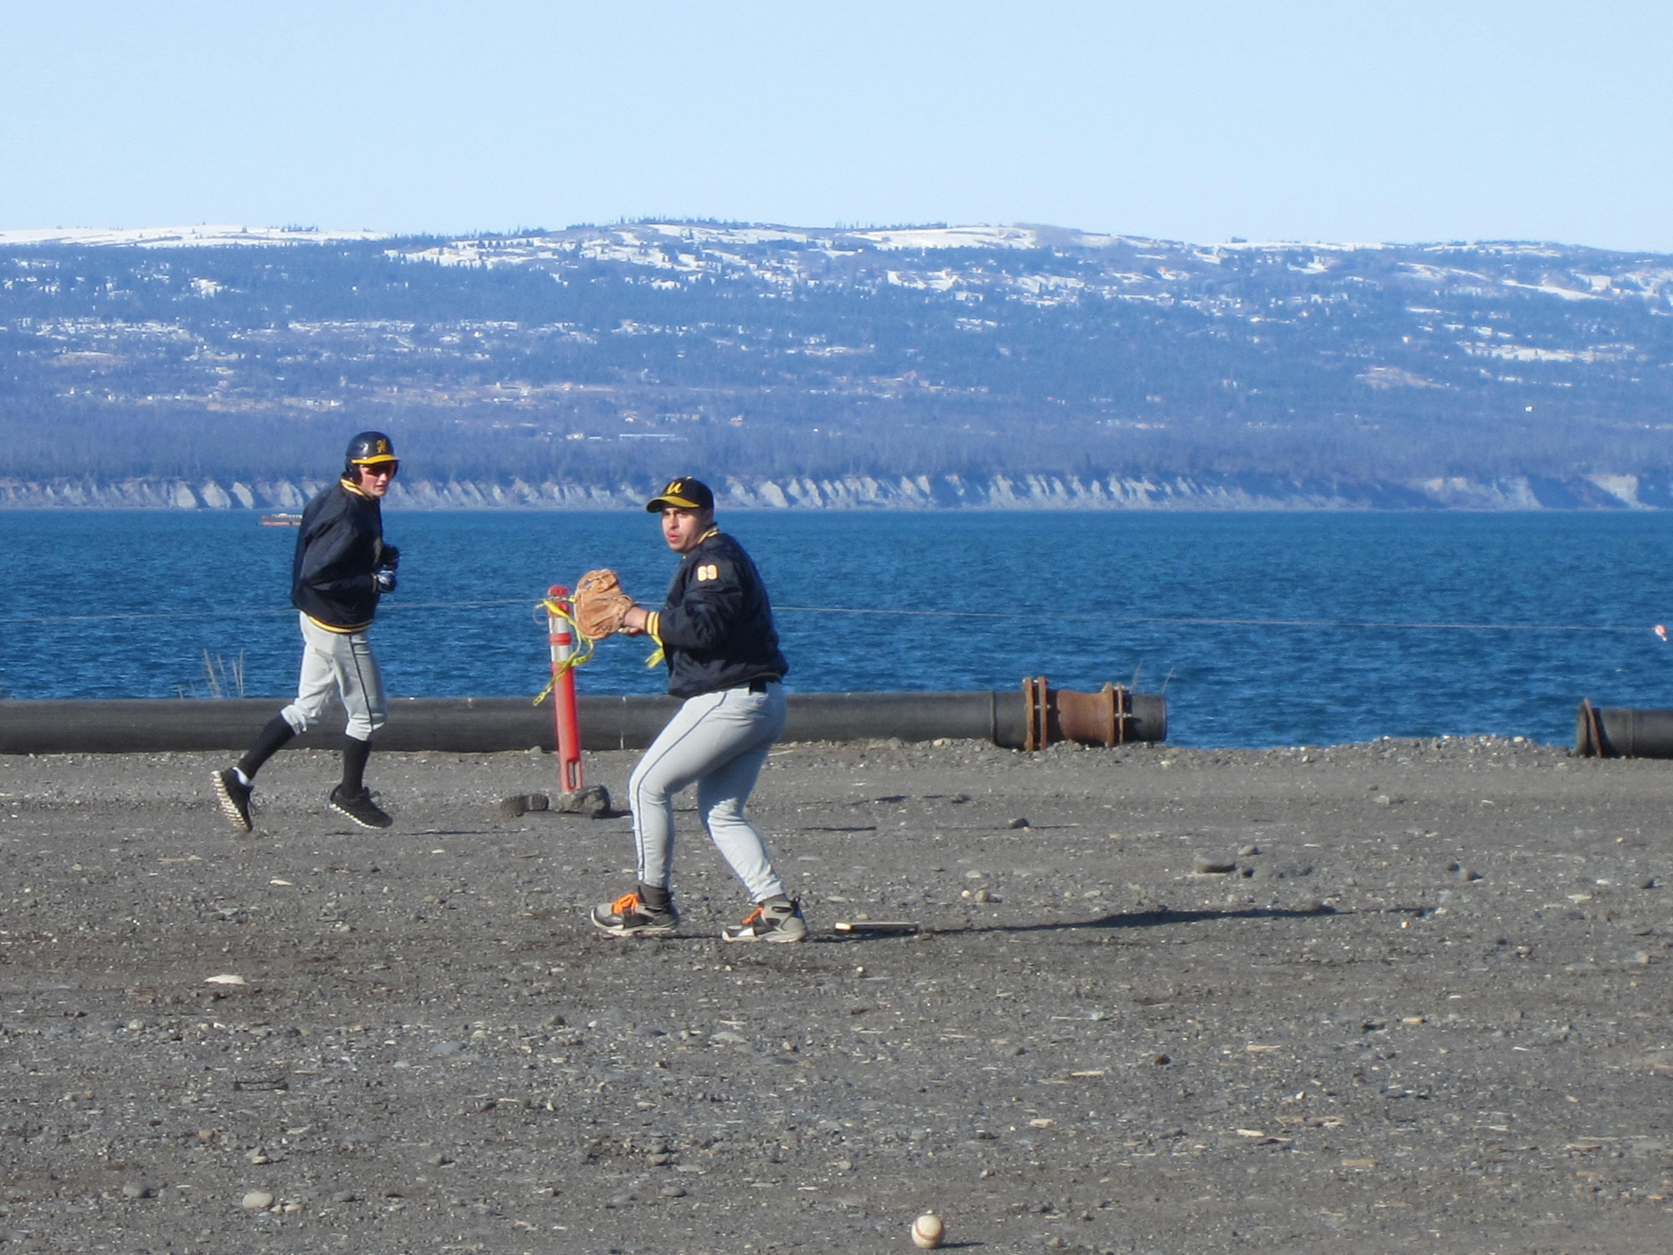 Dick Perez throws the ball during a Mariner practice on the Homer Spit, while Brian Rowe runs. The Mariners' first game of the season will be May 3 at home.